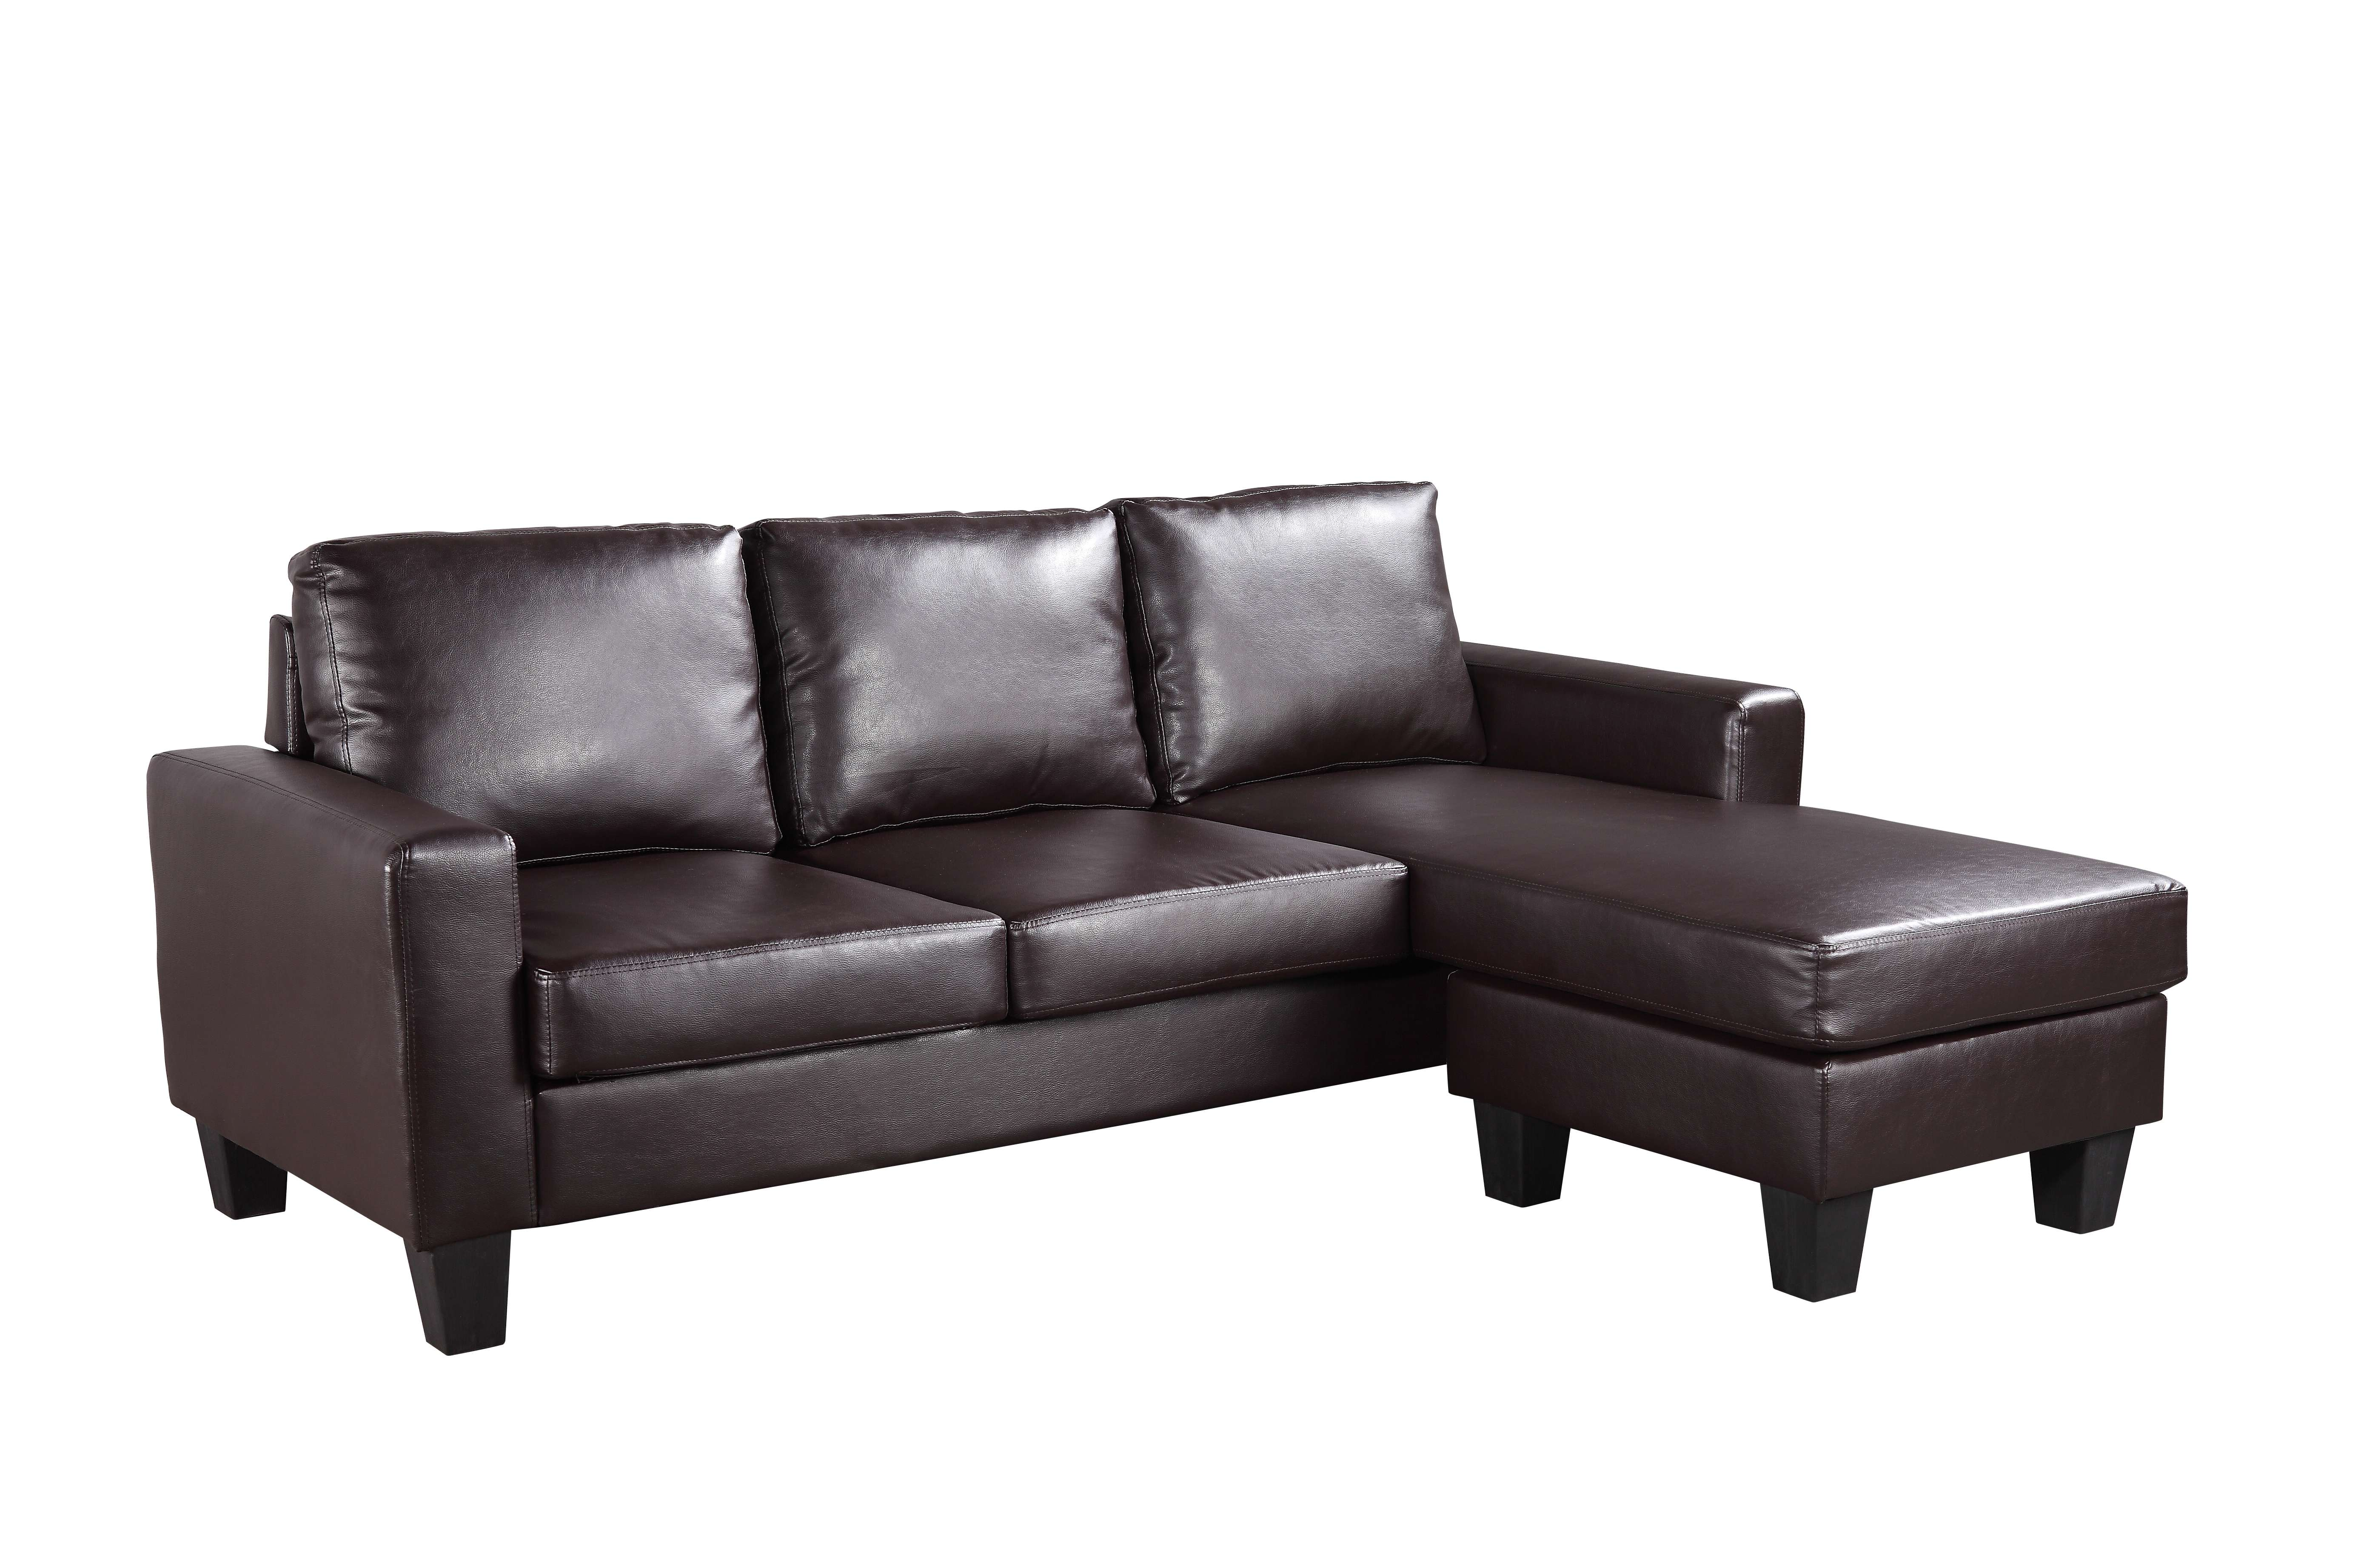 Glory Cappuccino Faux Leather Sofa Chaise & Reviews - Goedekers.com